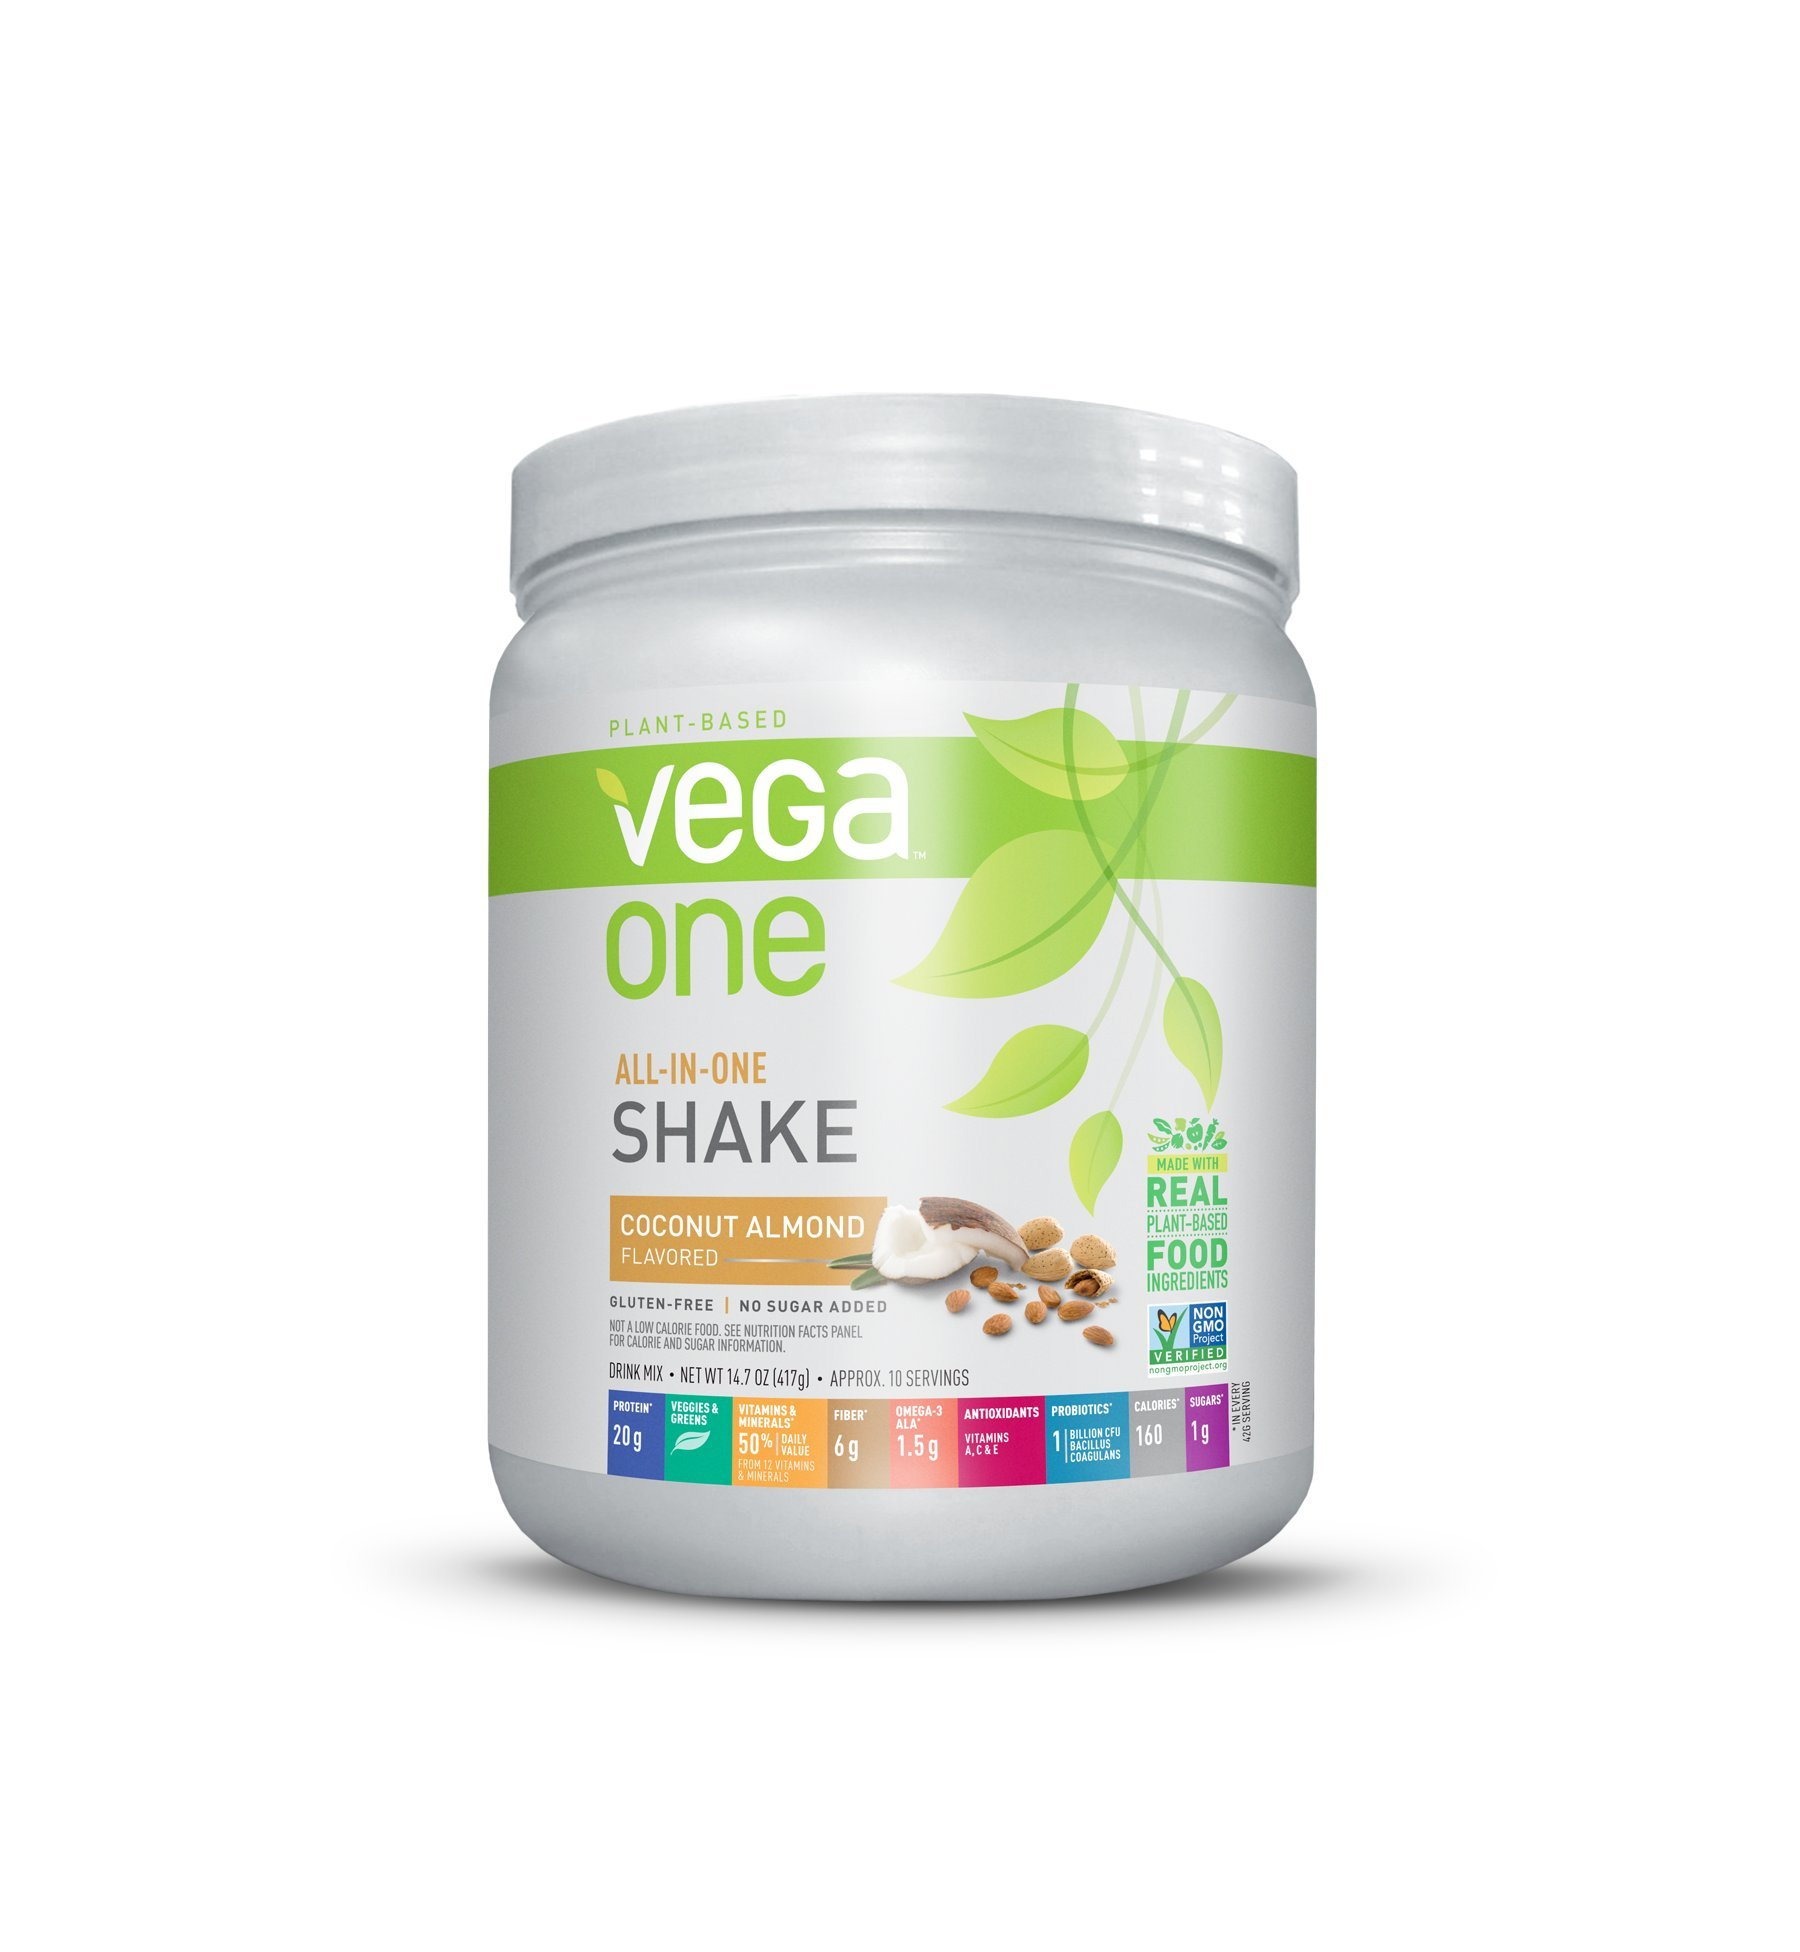 Vega One All-In-One Plant Based Protein Powder, Coconut Almond, 0.92 lb, 10 Servings